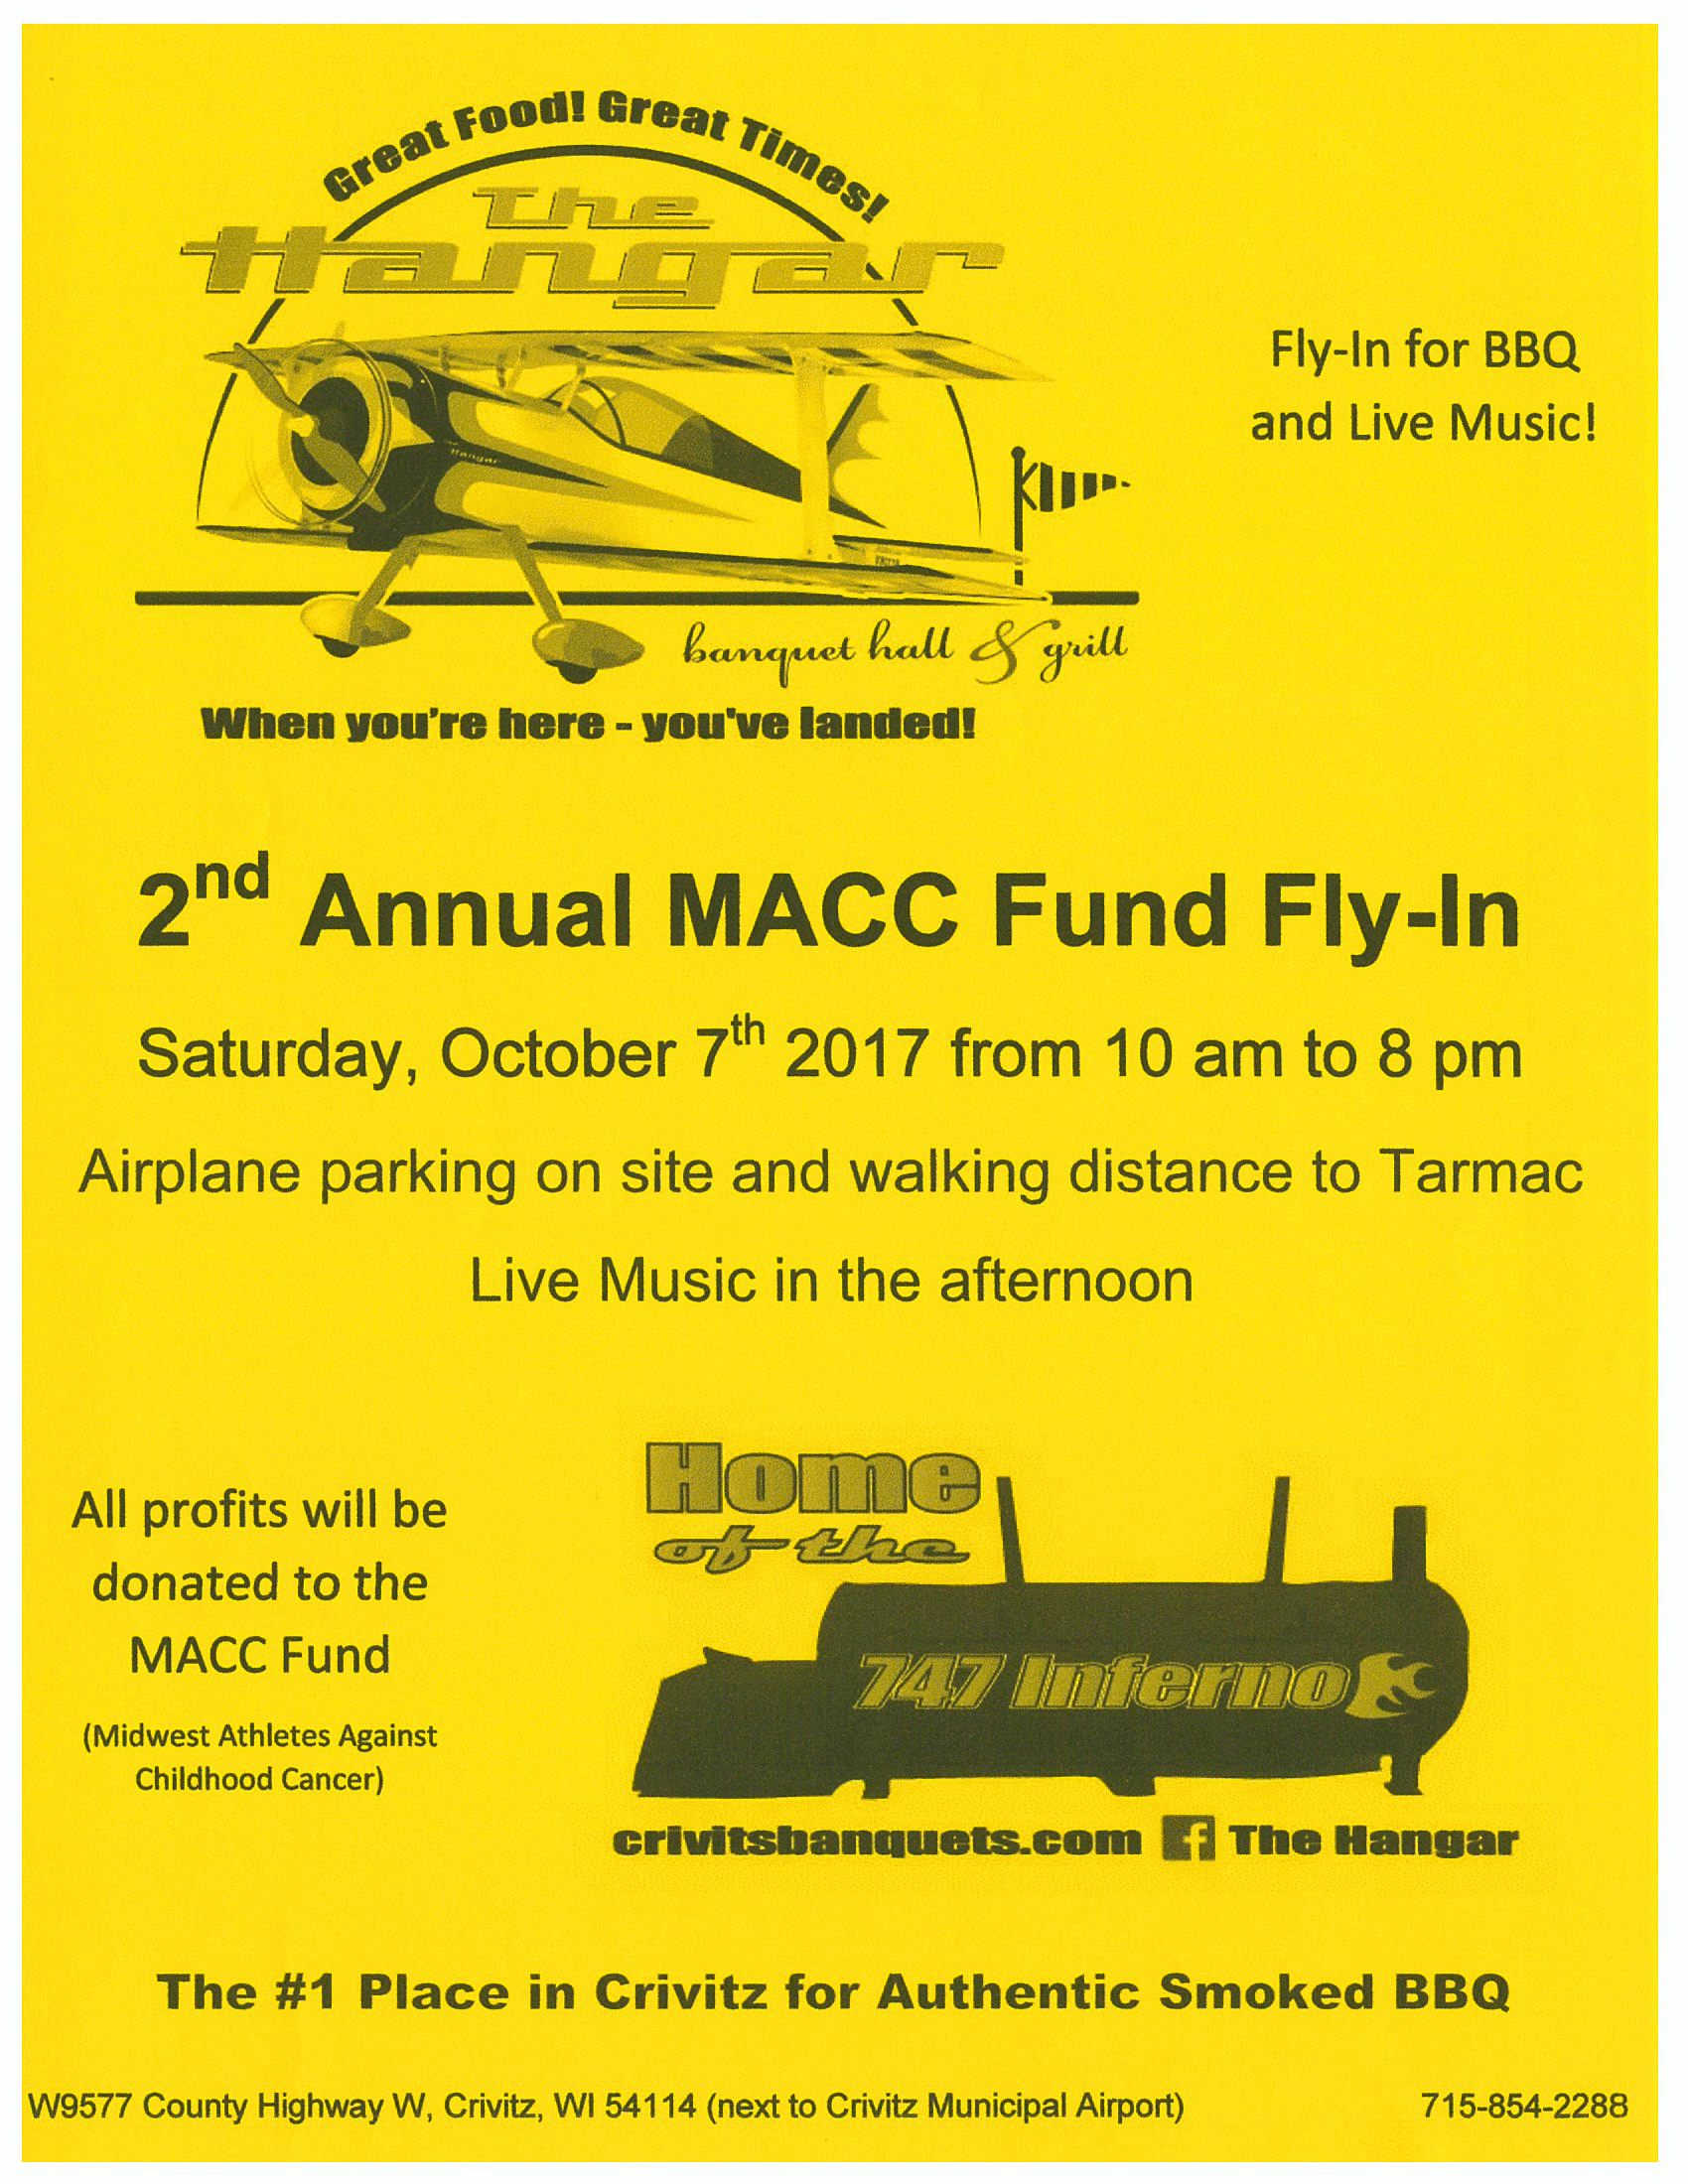 2nd Annual MACC Fund Fly-In